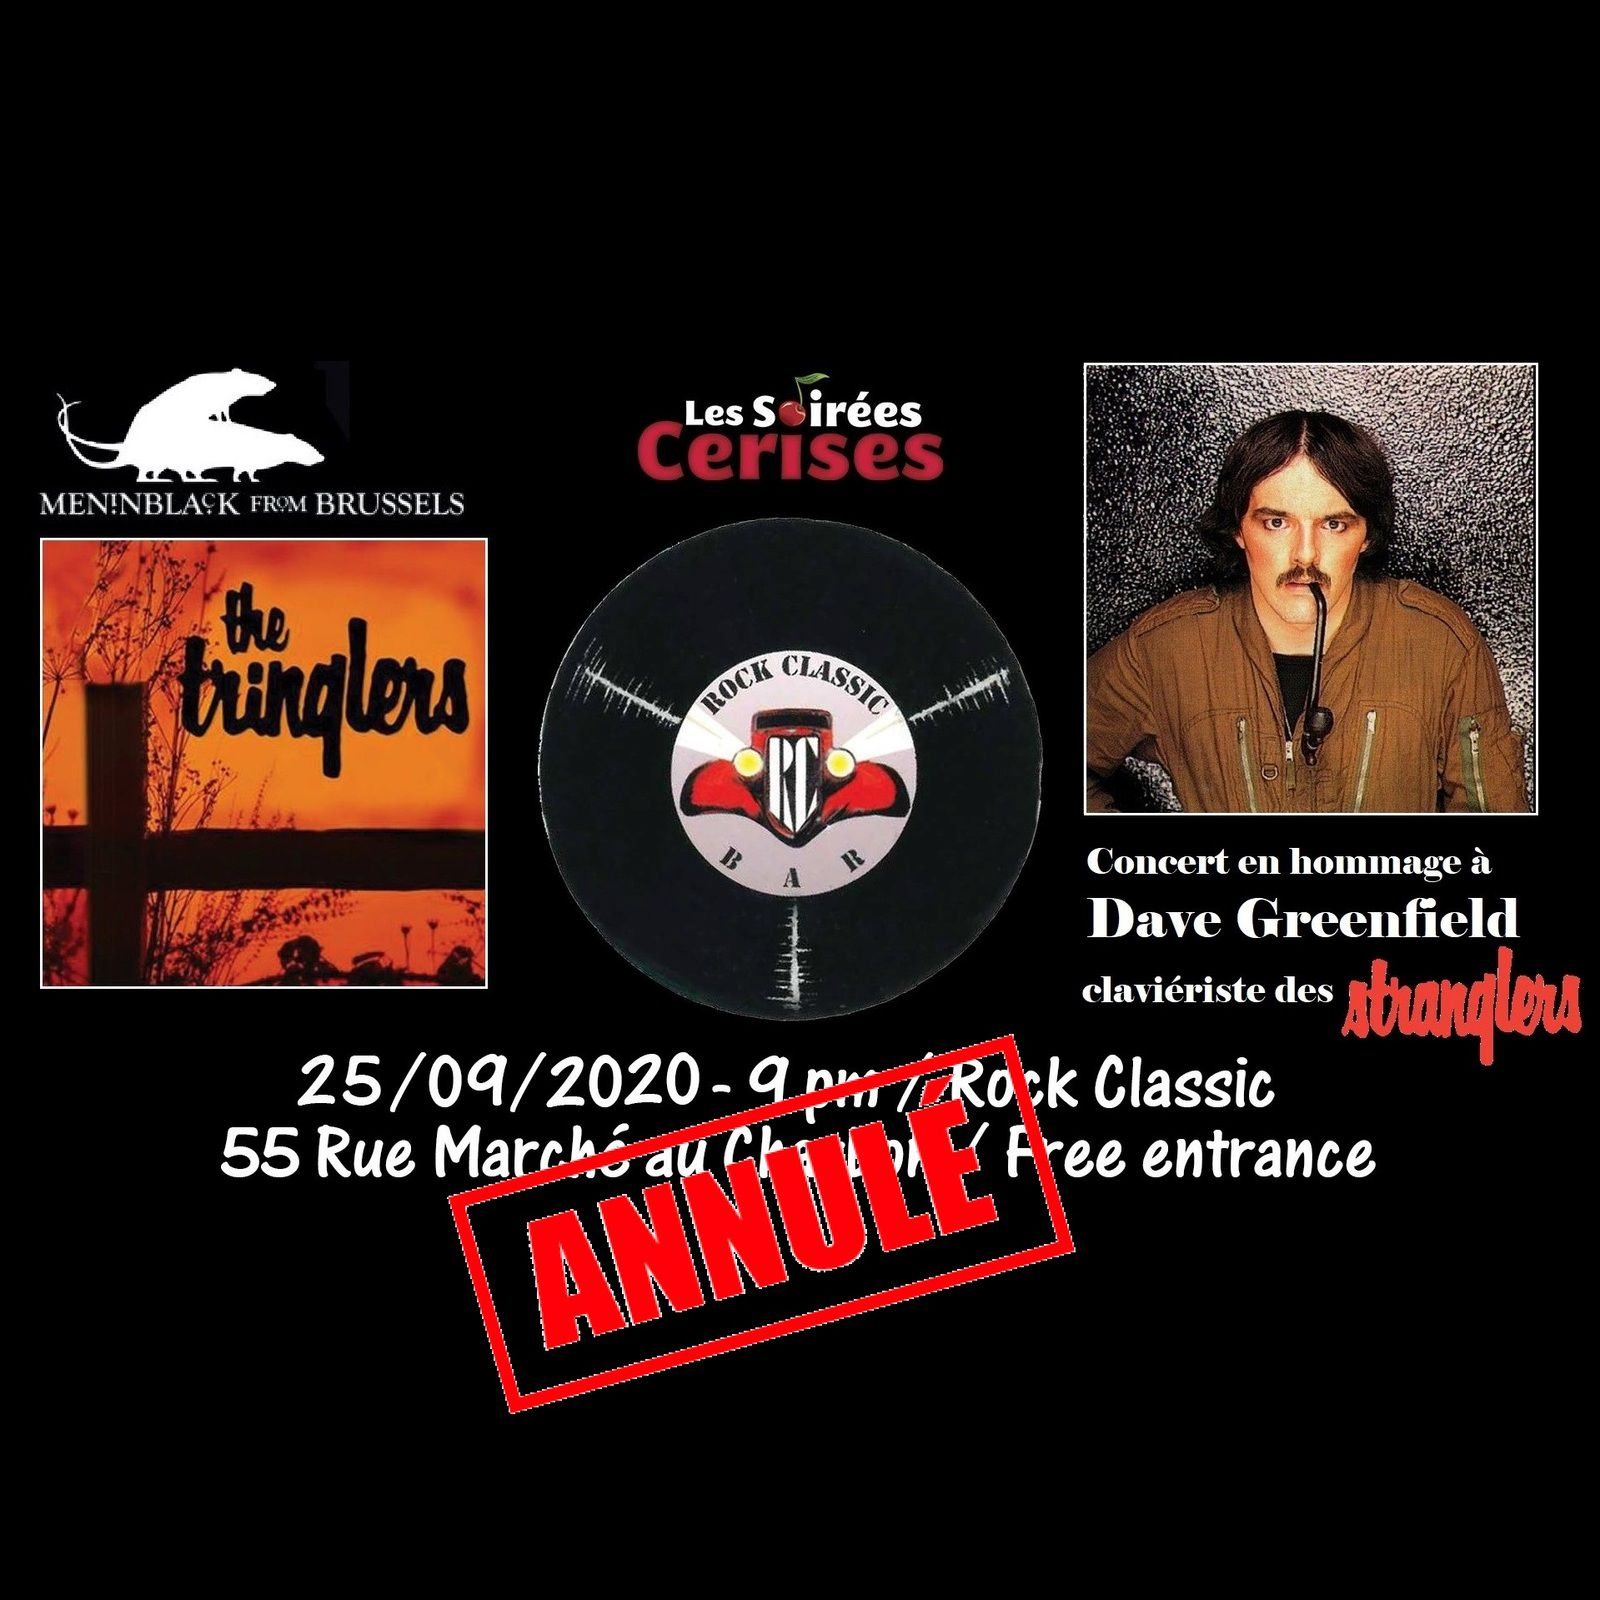 🎵 The Tringlers @ Rock Classic - 25/09/2020 - annulé